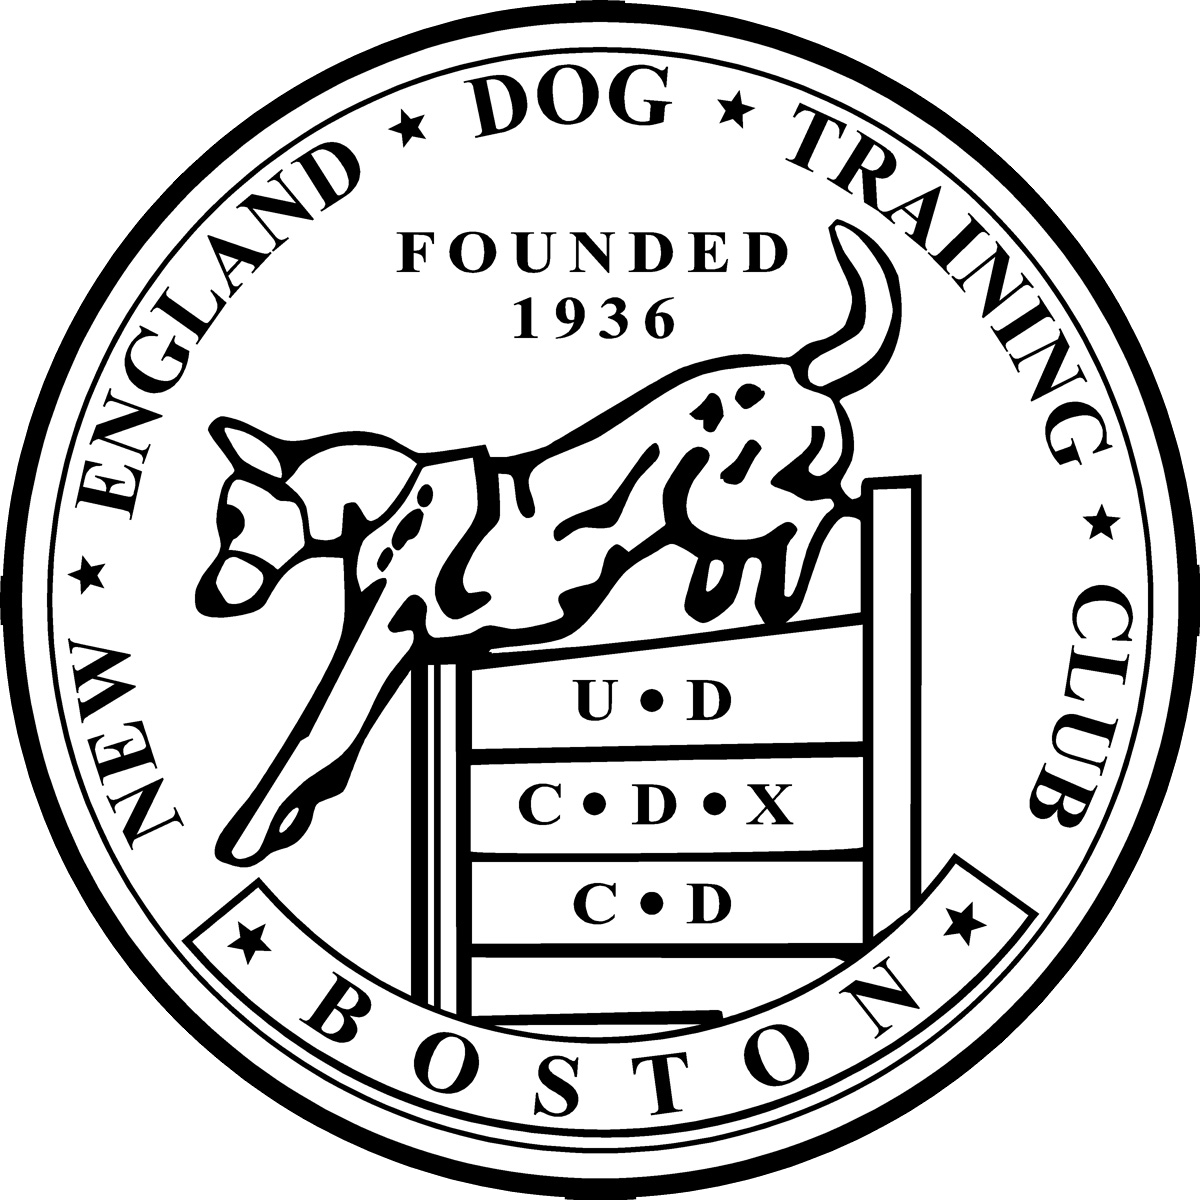 New England Dog Training Club